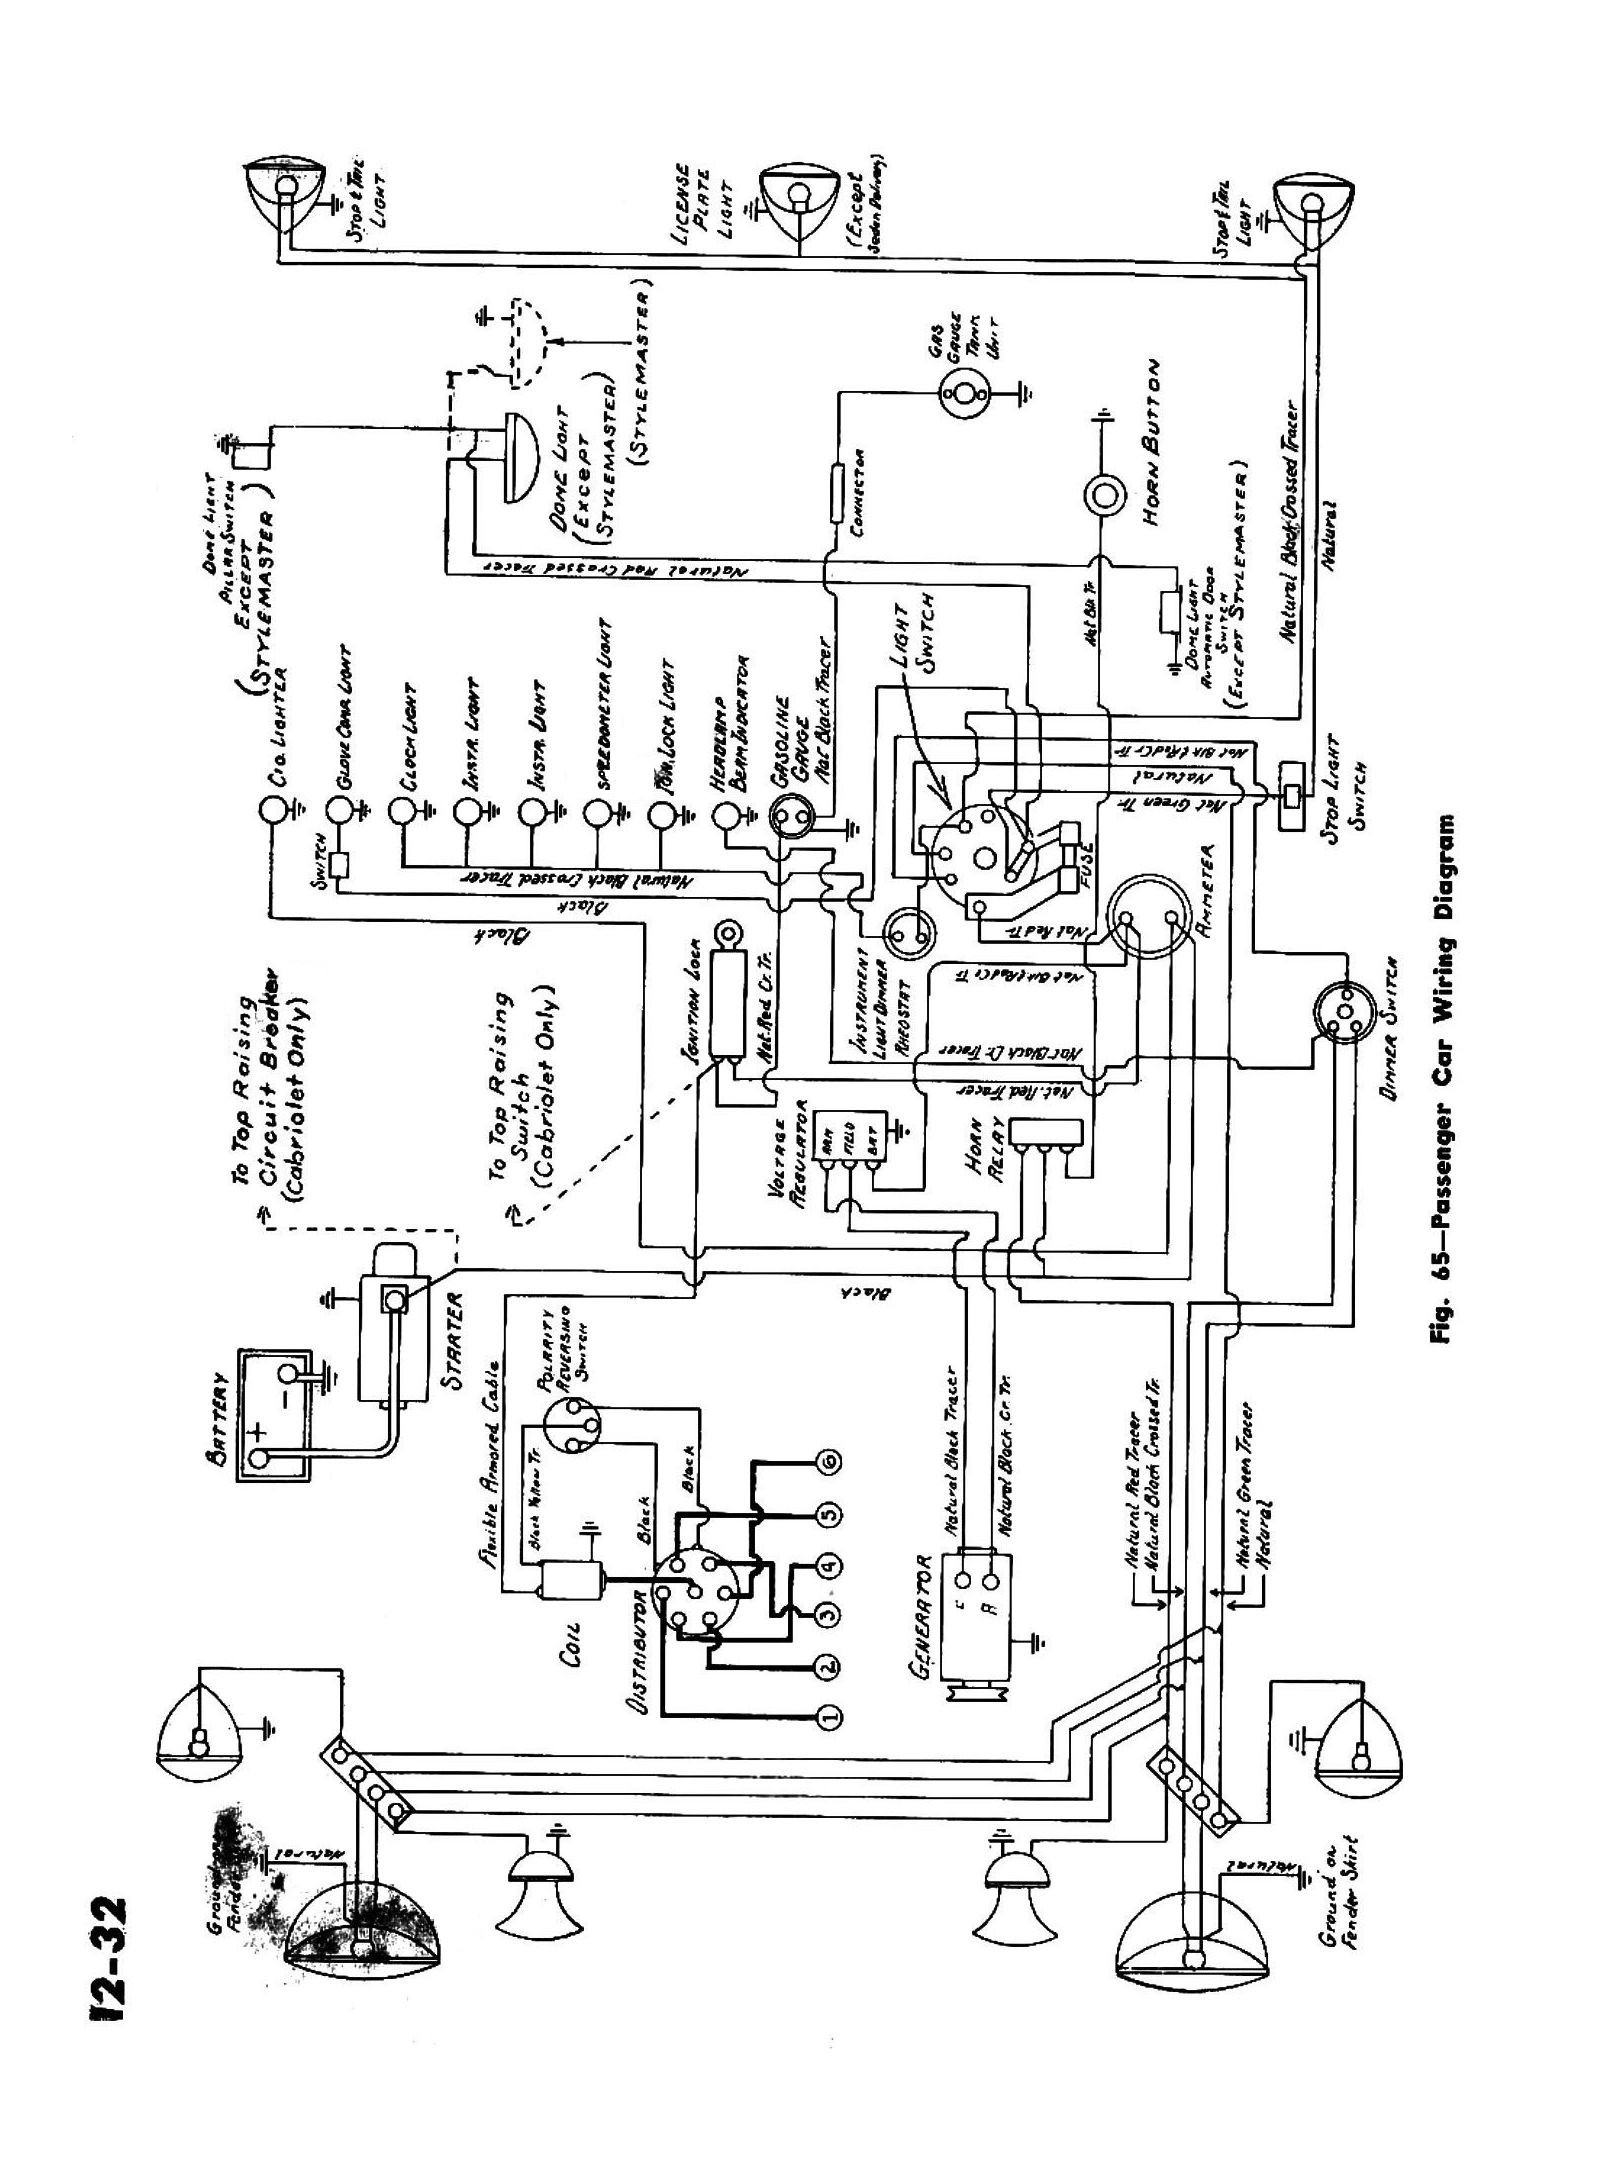 Vehicle Wiring System Pdf